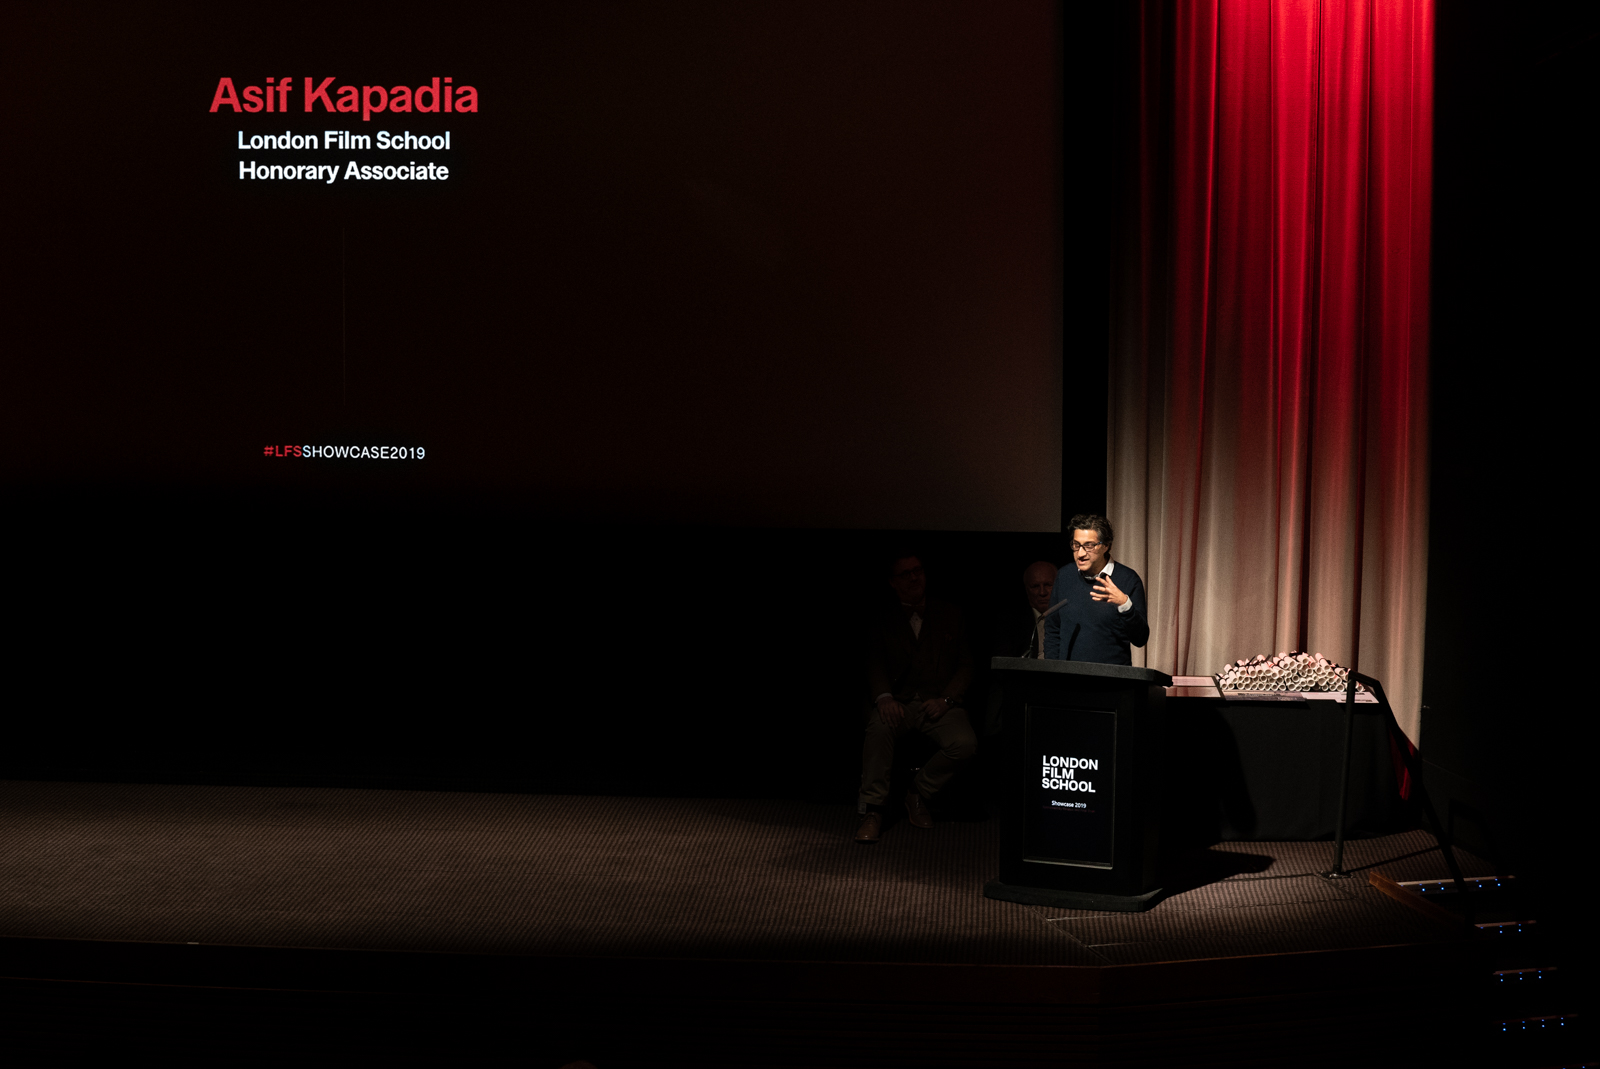 Asif Kapadia speaks at podium